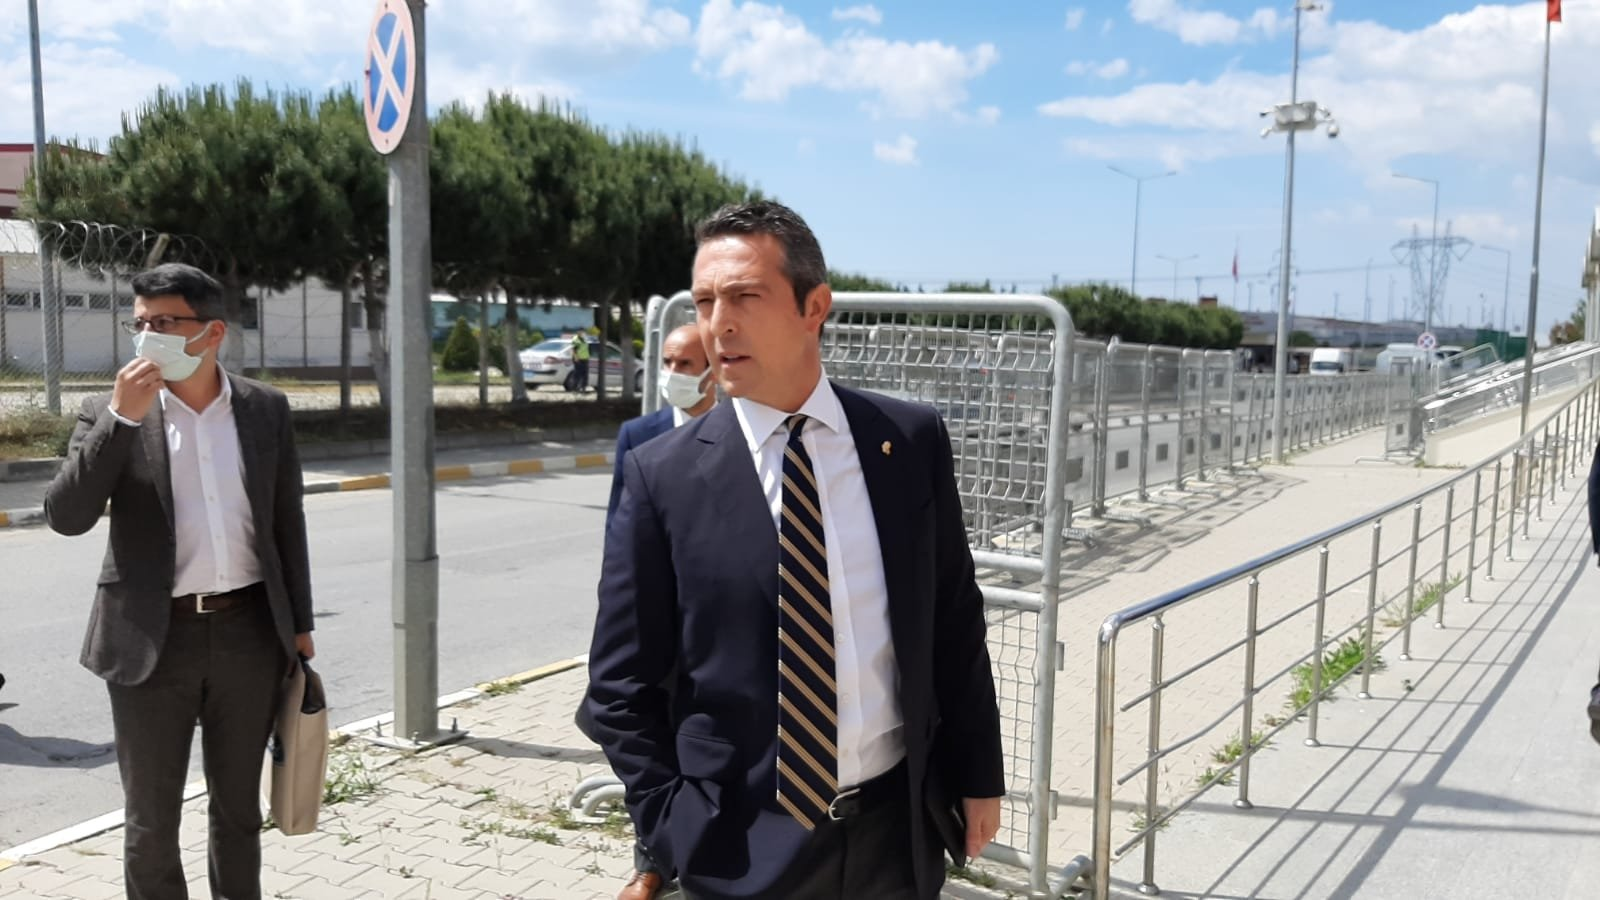 Fenerbahçe Chairperson Ali Koç arrives at the courthouse to watch the trial, in Istanbul, Turkey, June 4, 2021. (DHA PHOTO)